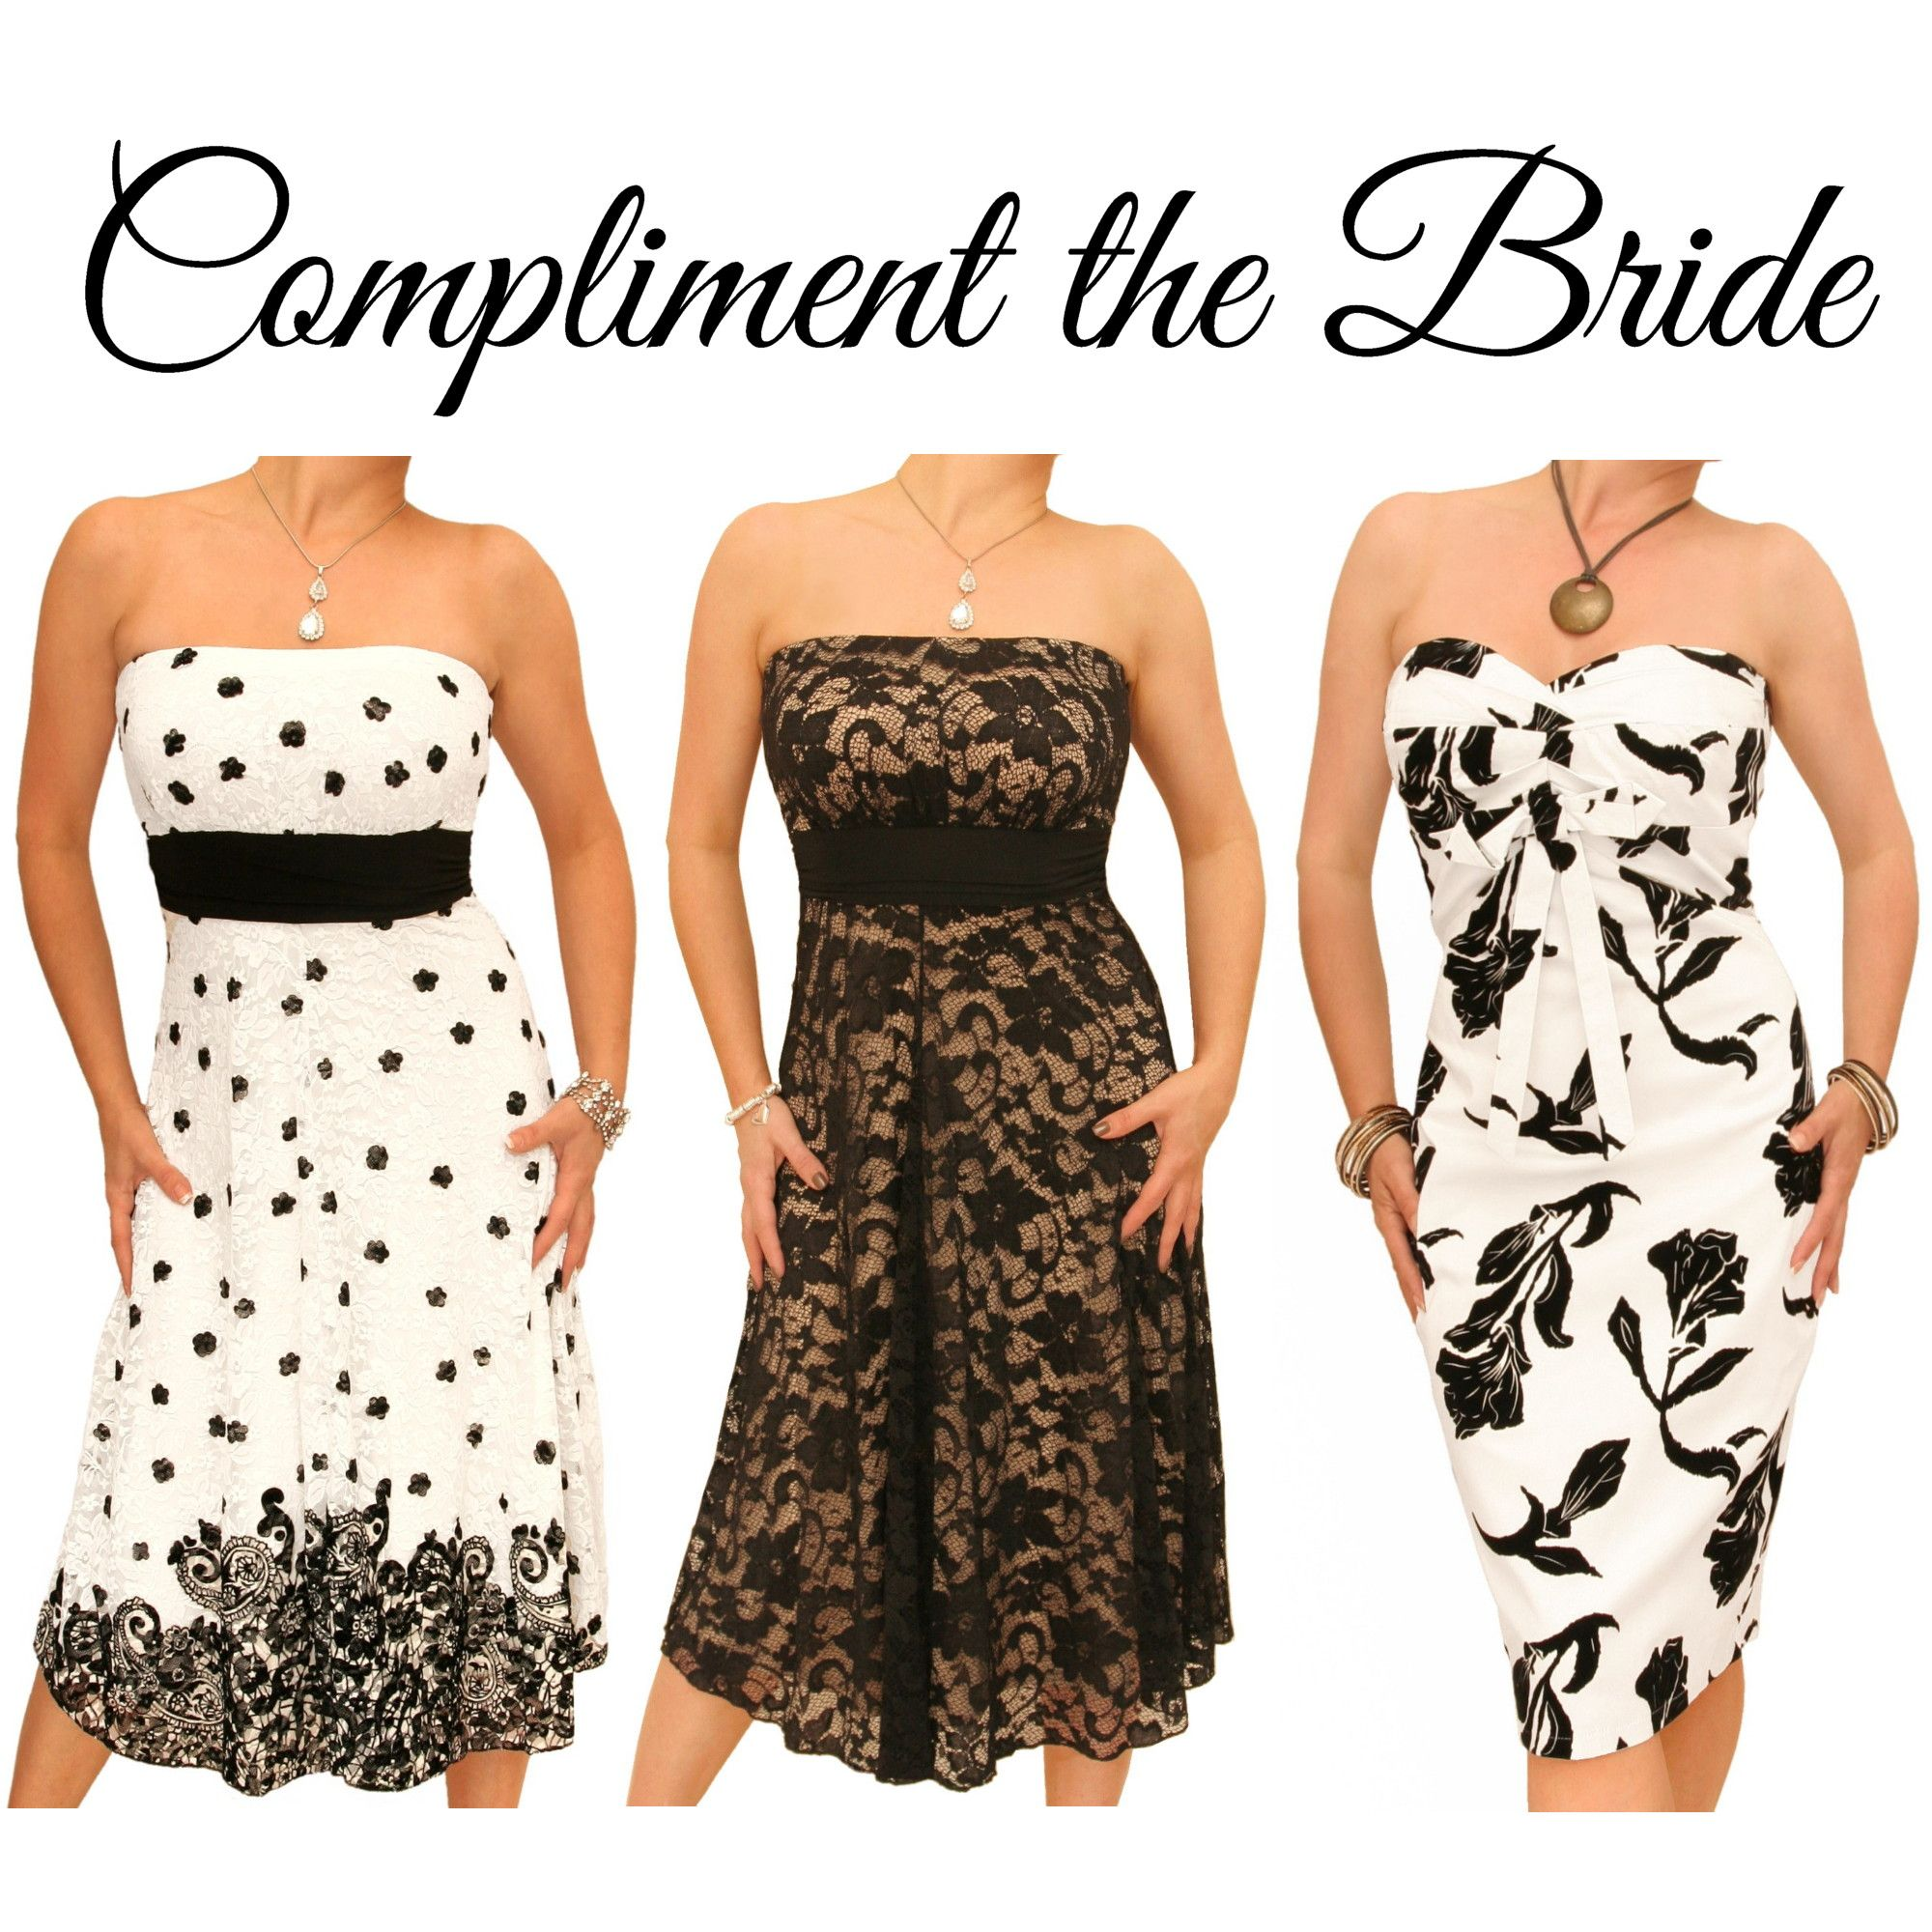 Compliment the bride if monochrome is your wedding colour theme we